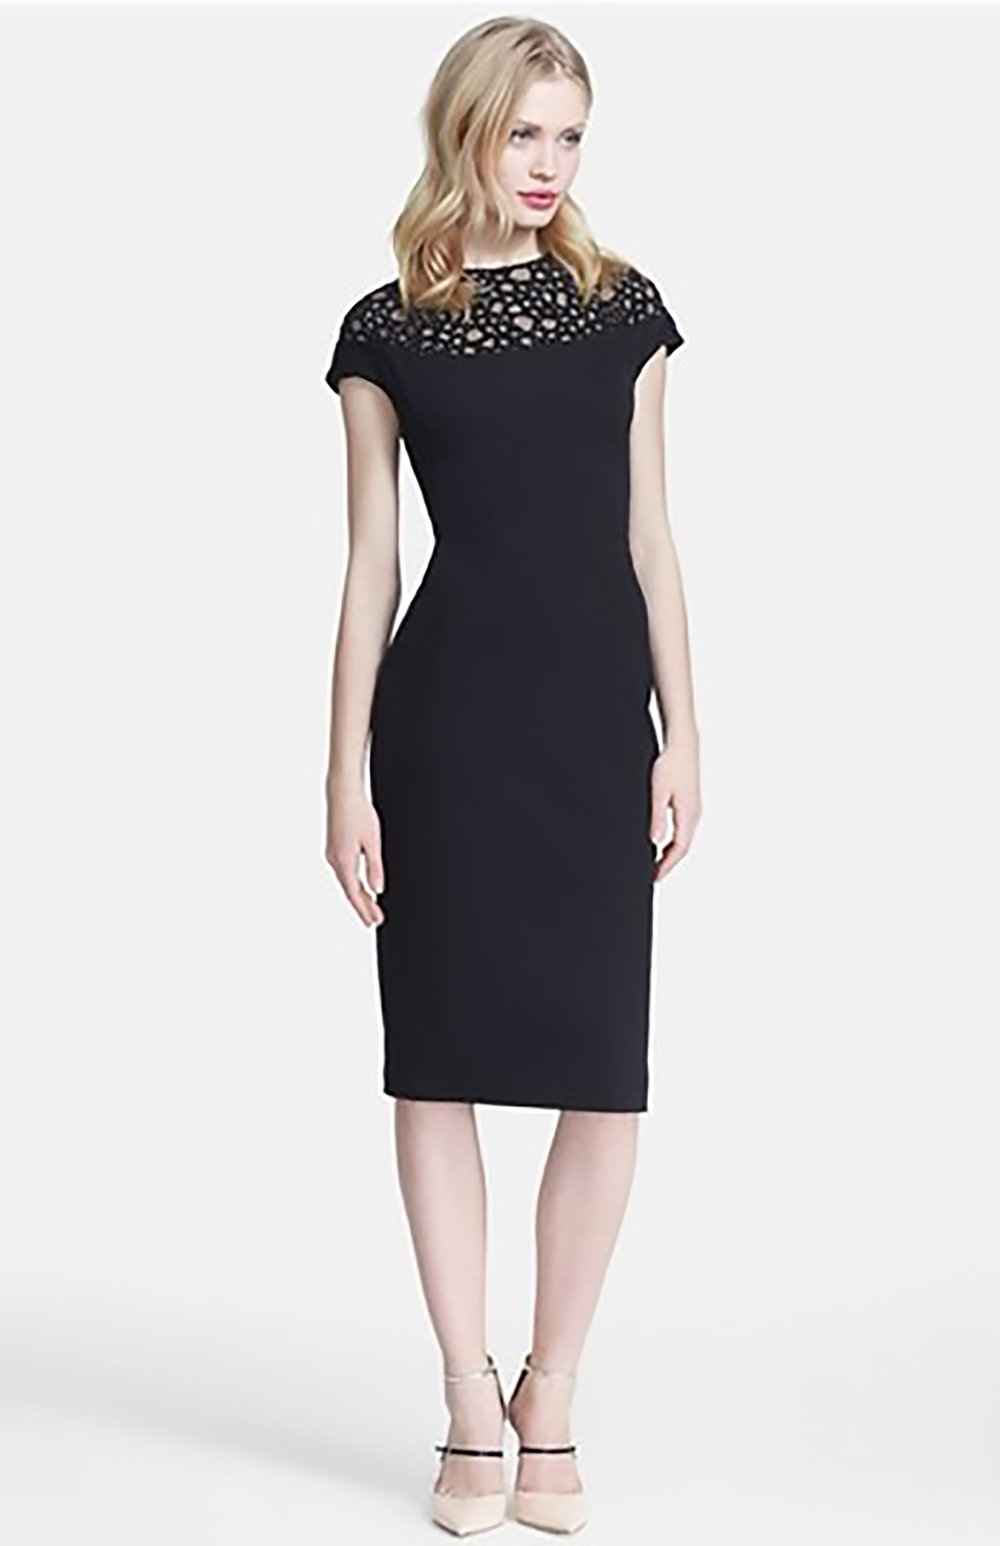 nordstrom lela rose embellished yoke sheath dress 1500.jpg